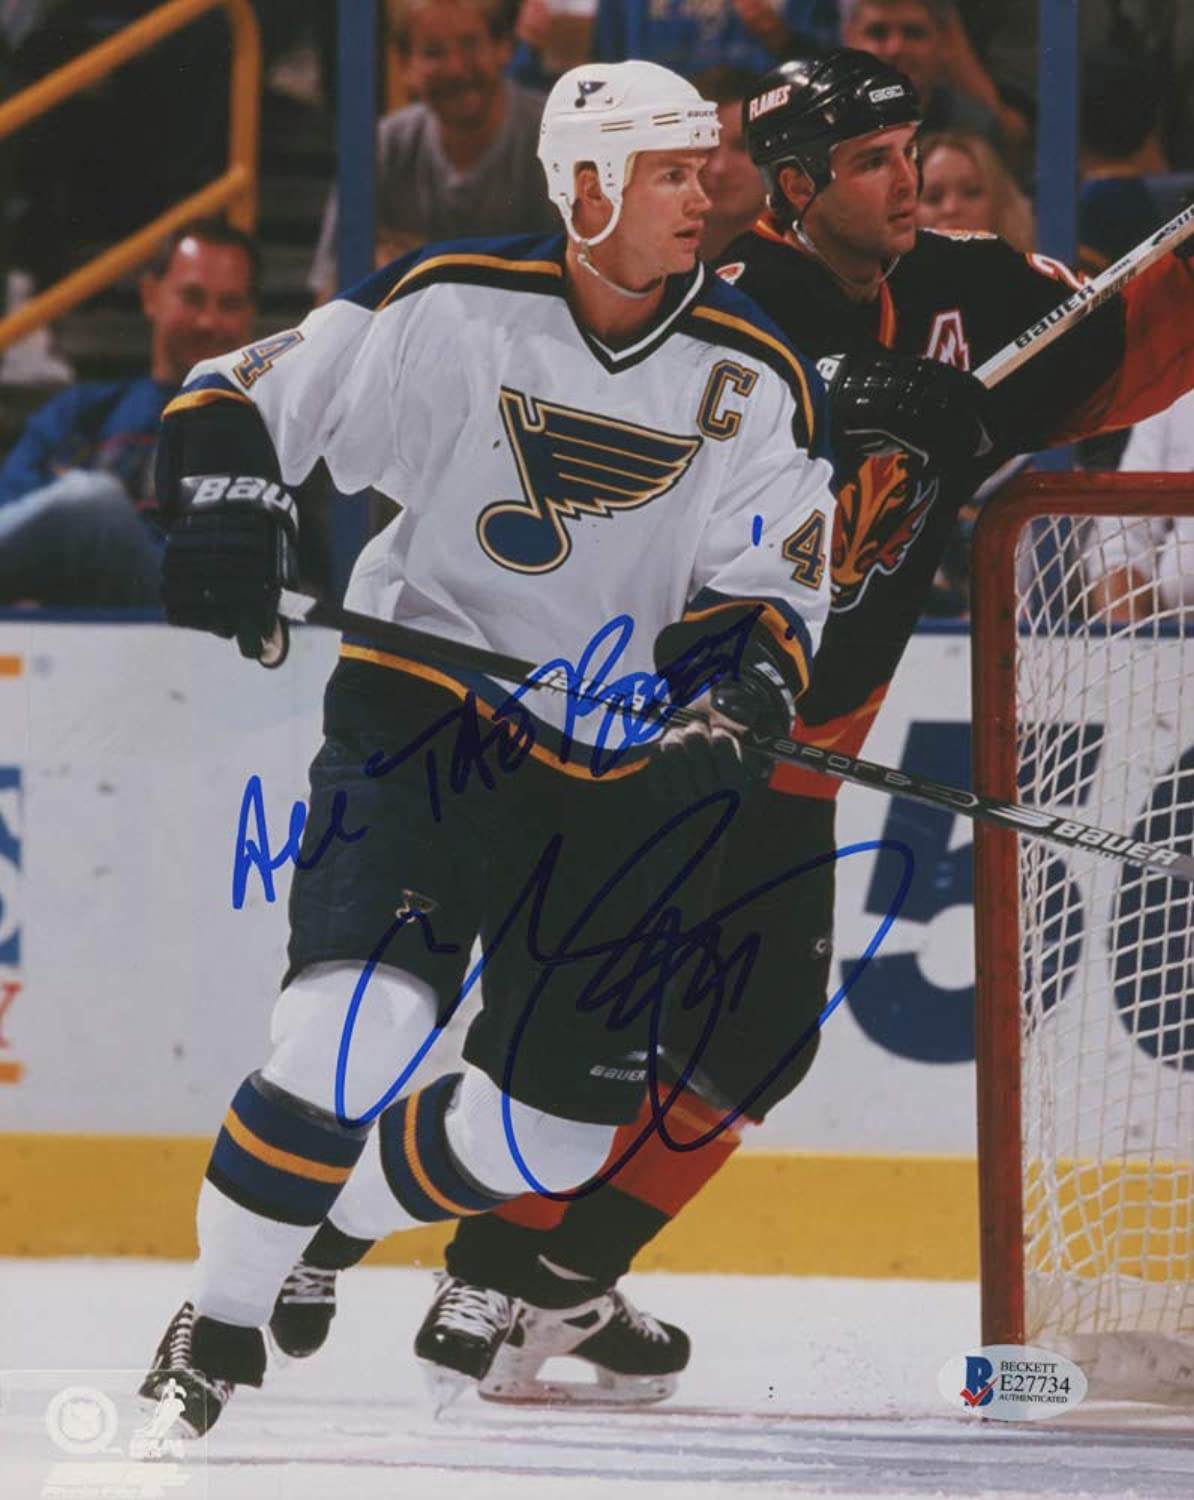 Chris Pronger Signed blueees 8x10 Photo Inscribed All The Best  (Beckett COA)